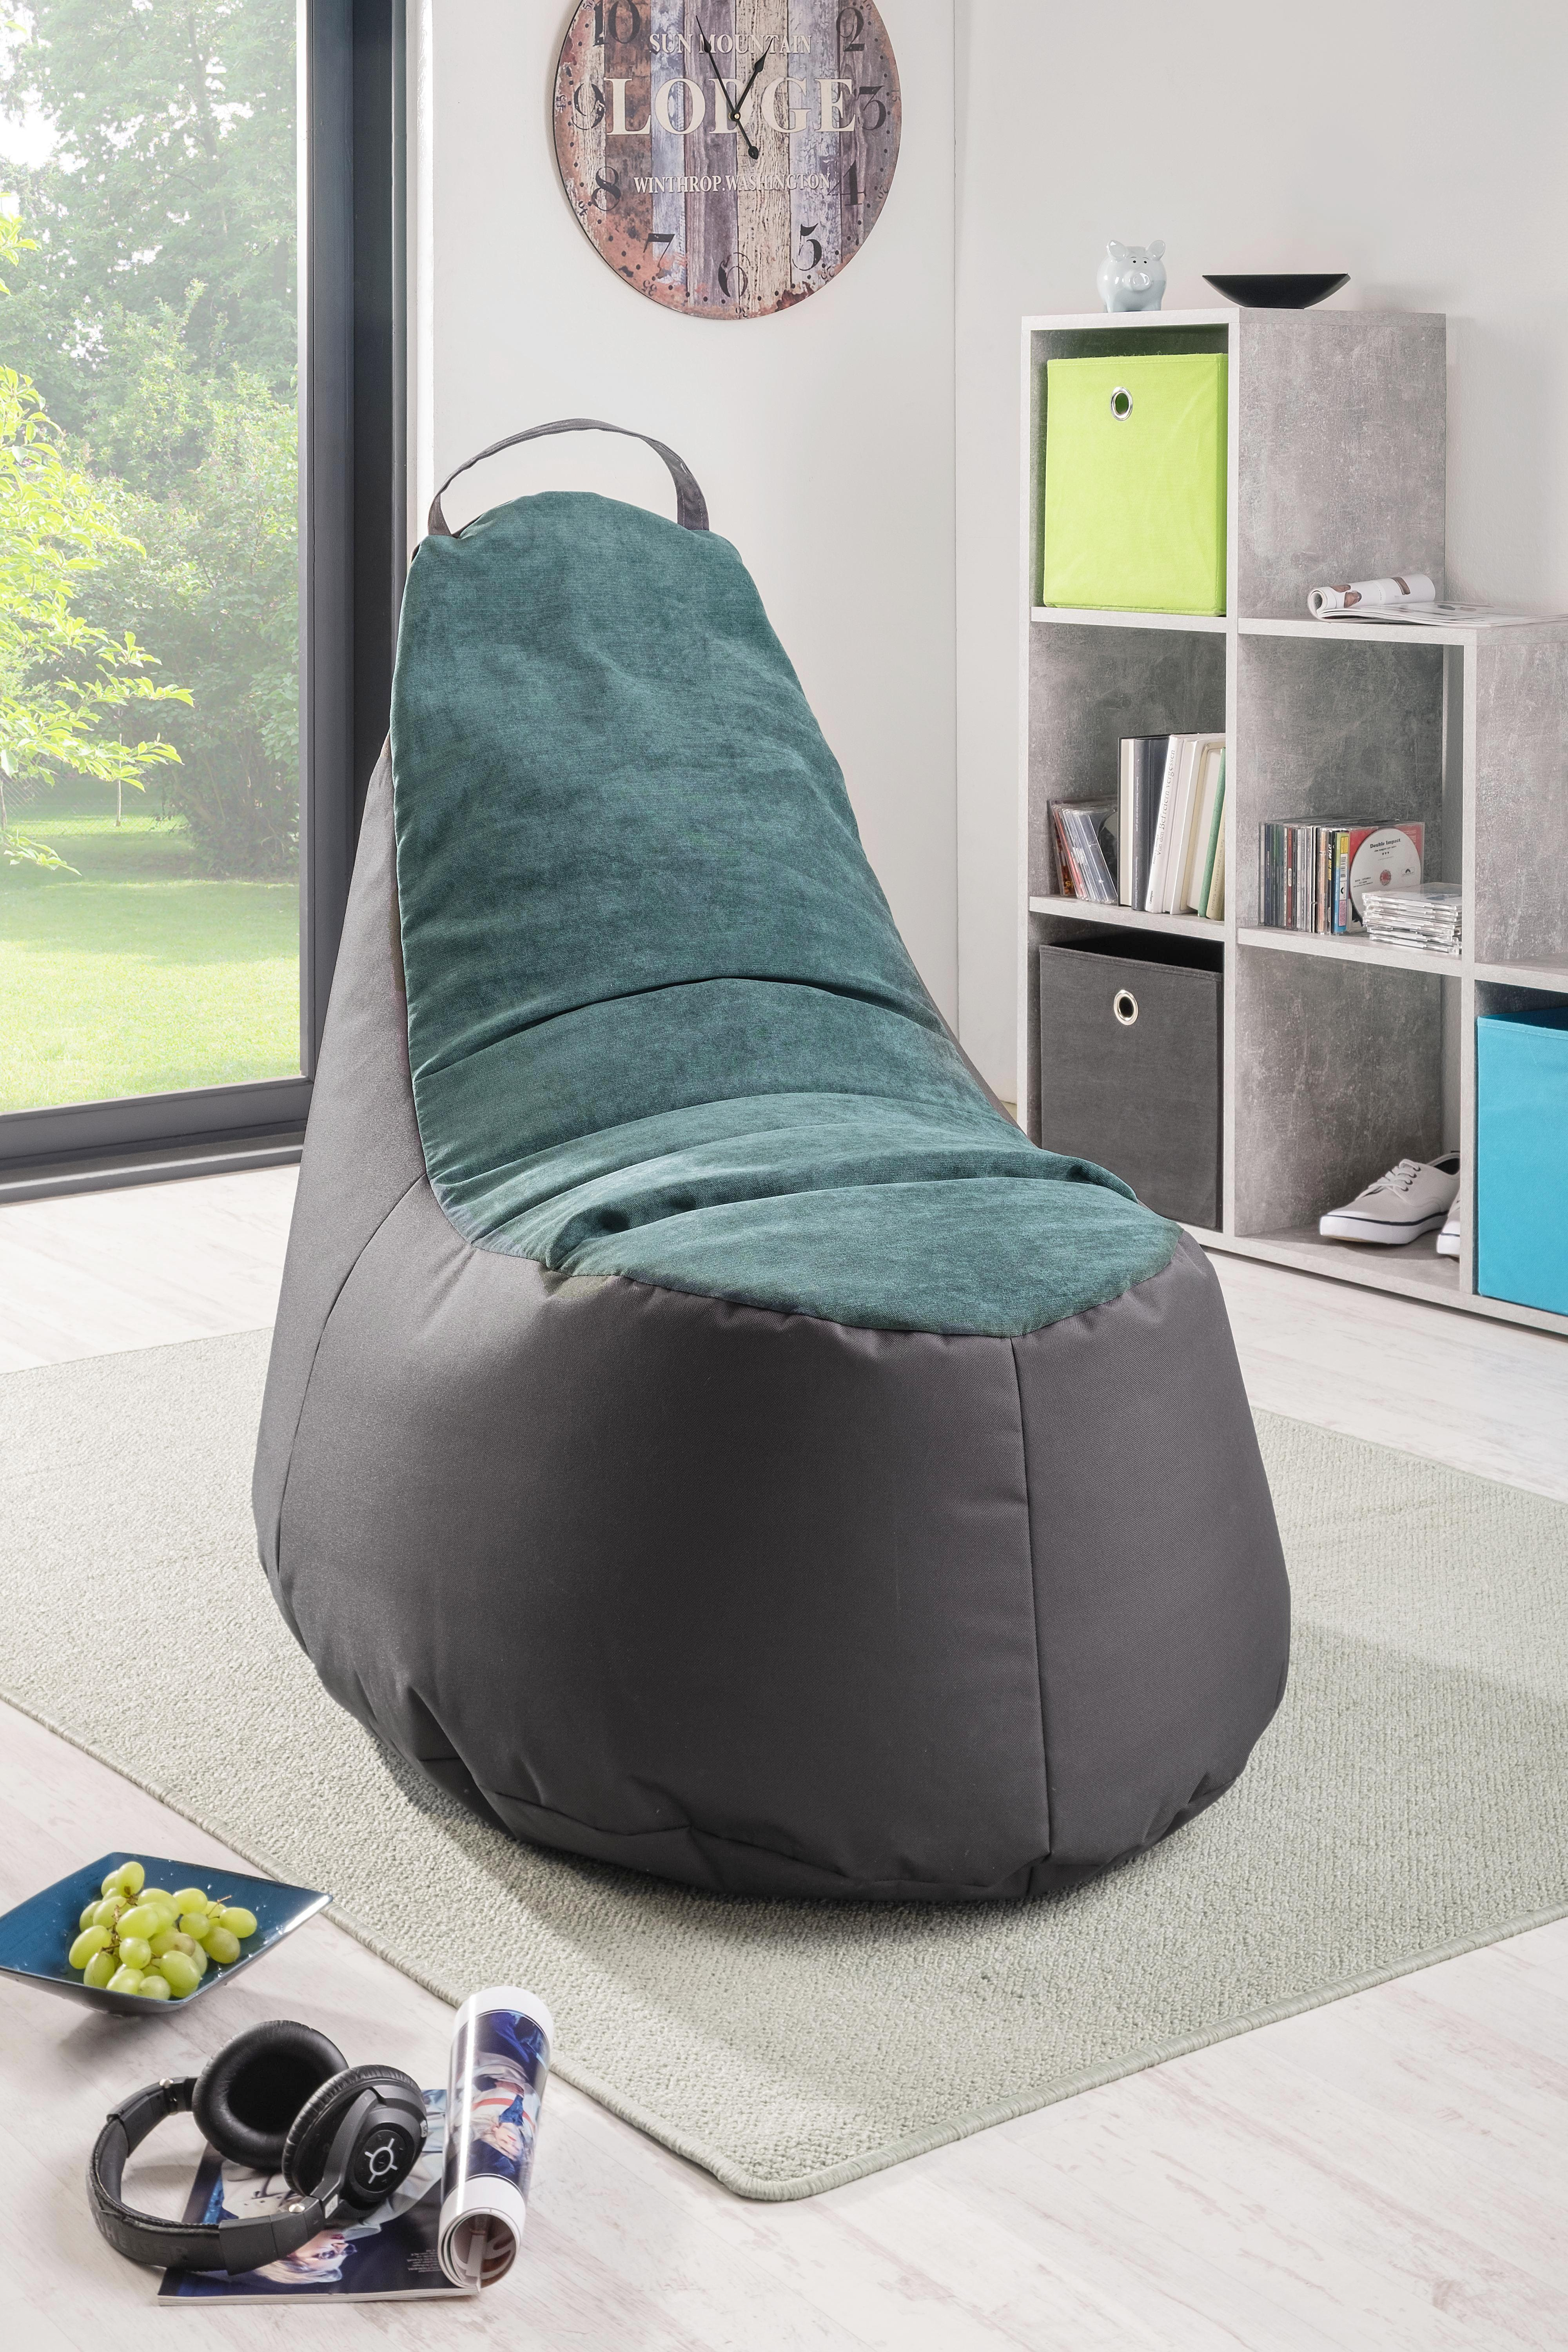 Ikoonz Sitzsack Gnstig Online Kaufen Cool Share On Facebook With